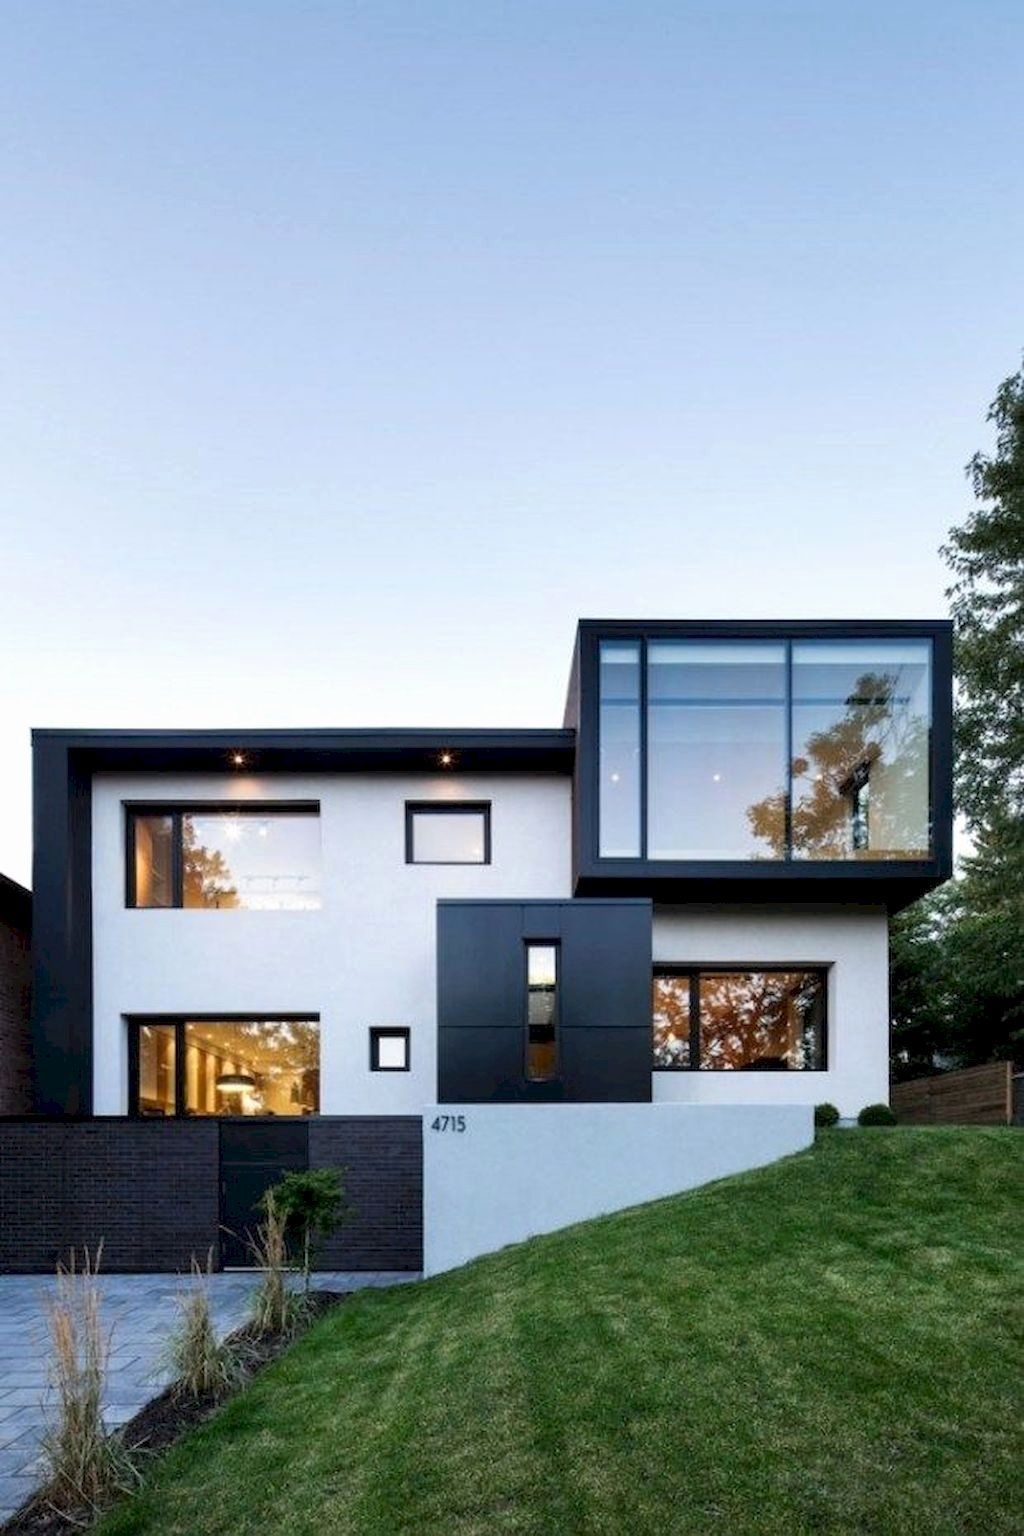 Black And White Modern House Inspirational 56 Stylish Home Black And White House Exterior Des In 2020 House Designs Exterior Contemporary House Exterior Concrete House